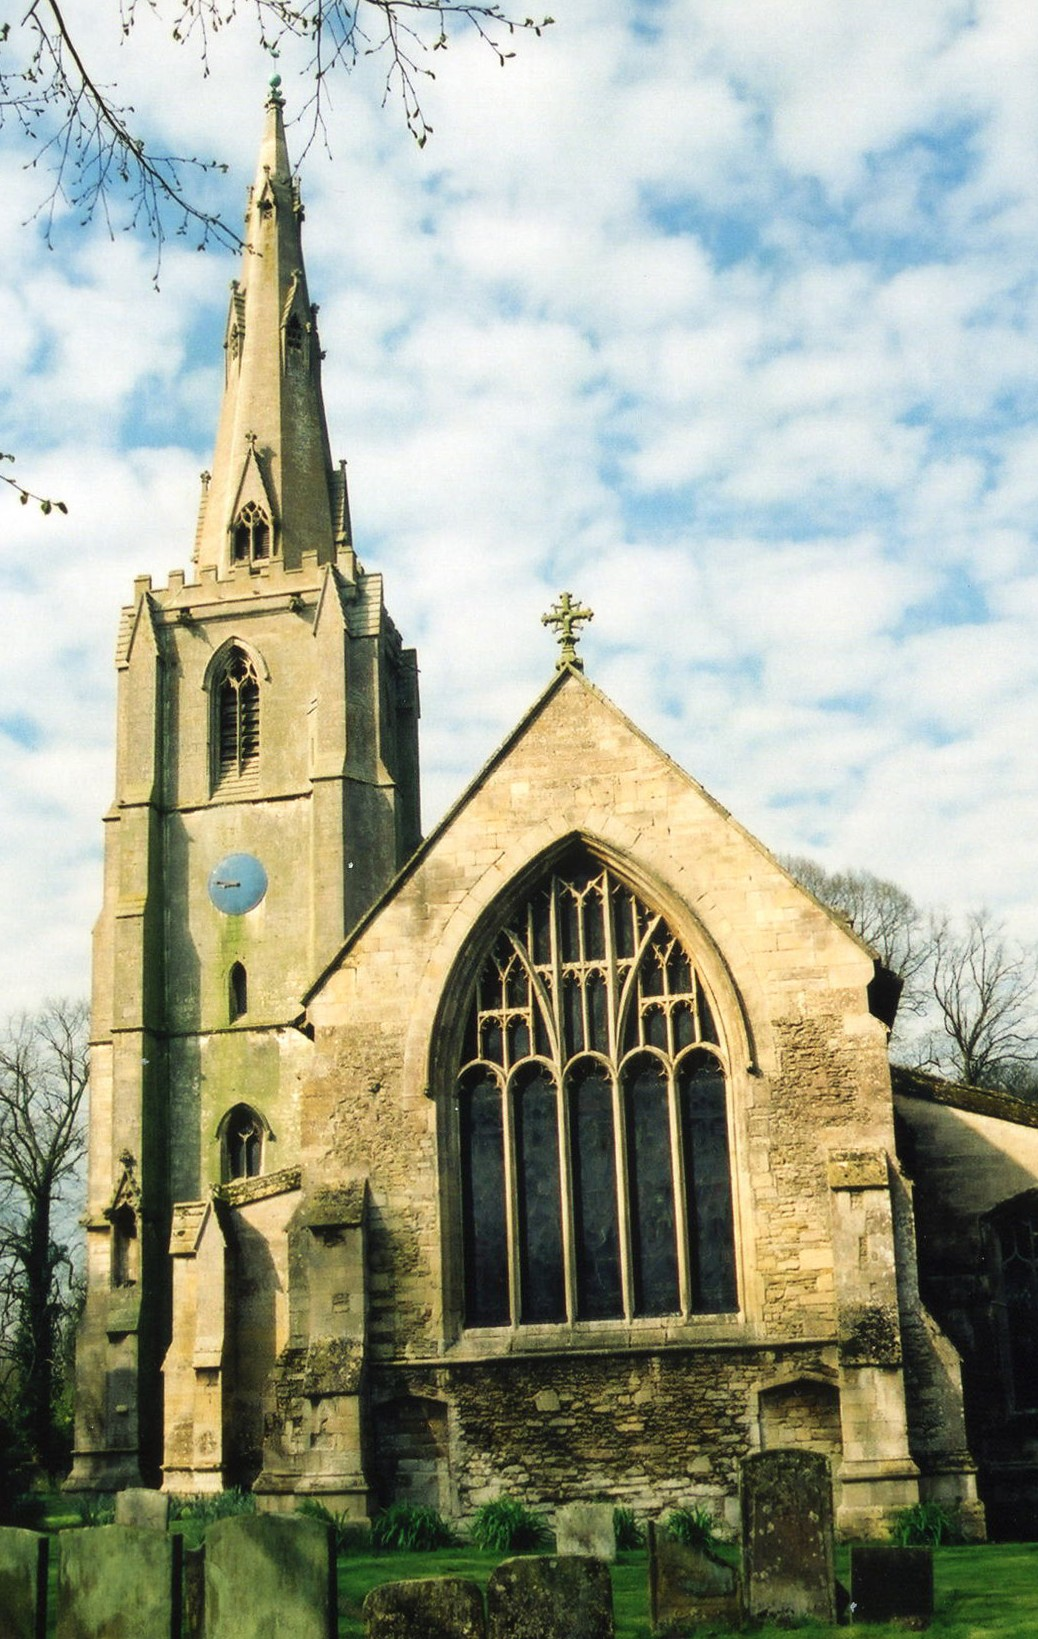 Saint Mary's Church